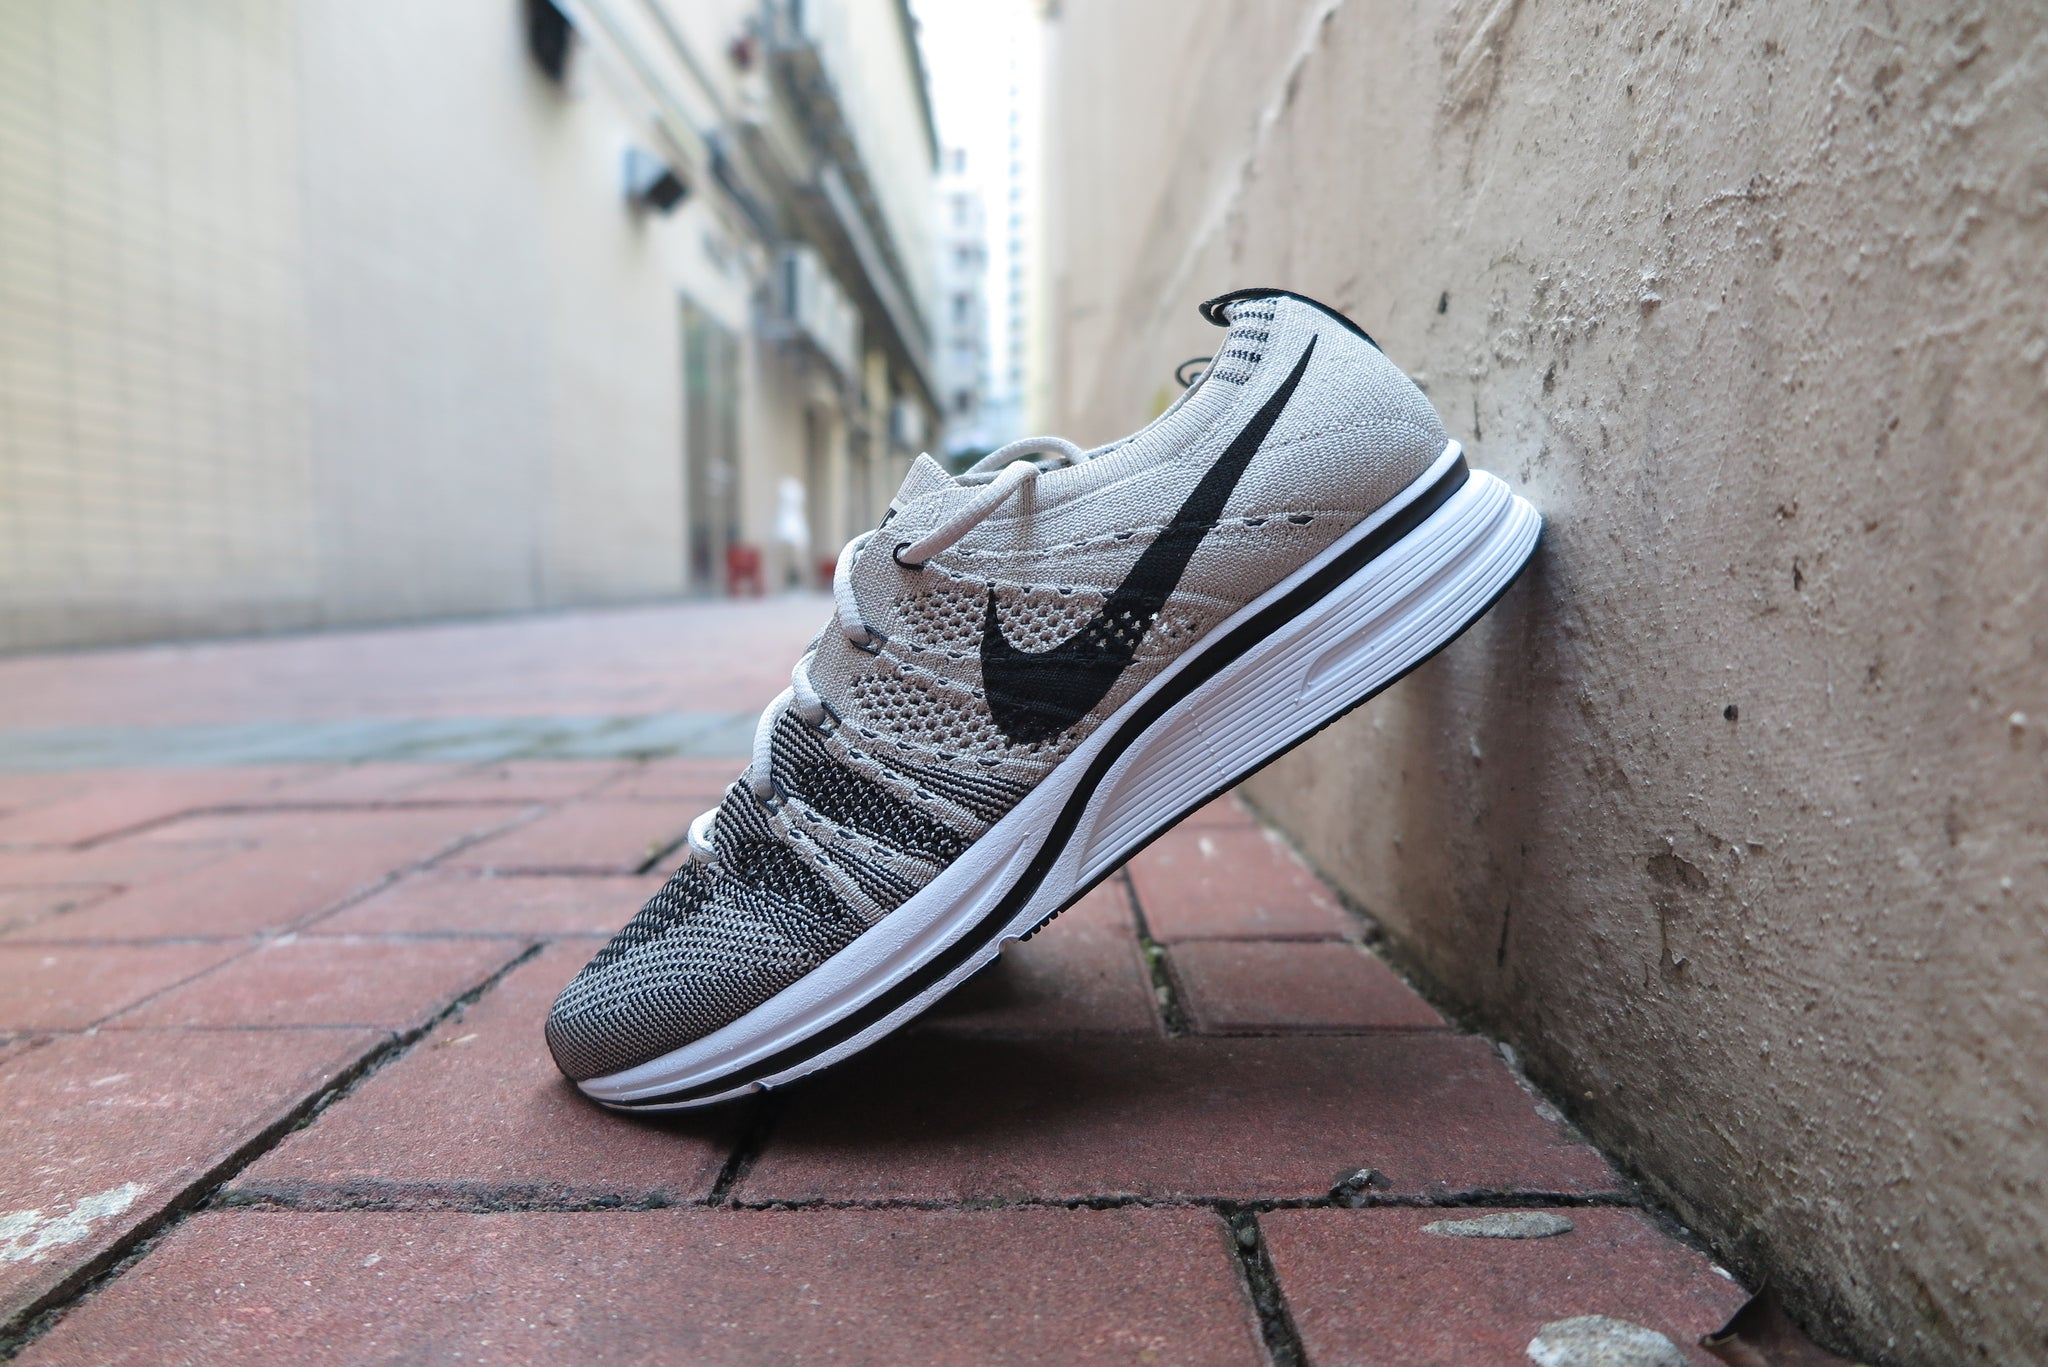 Nike Flyknit Trainer - Pale Grey/Black/White #AH8396-600-Sneakers-Navy Selected Shop